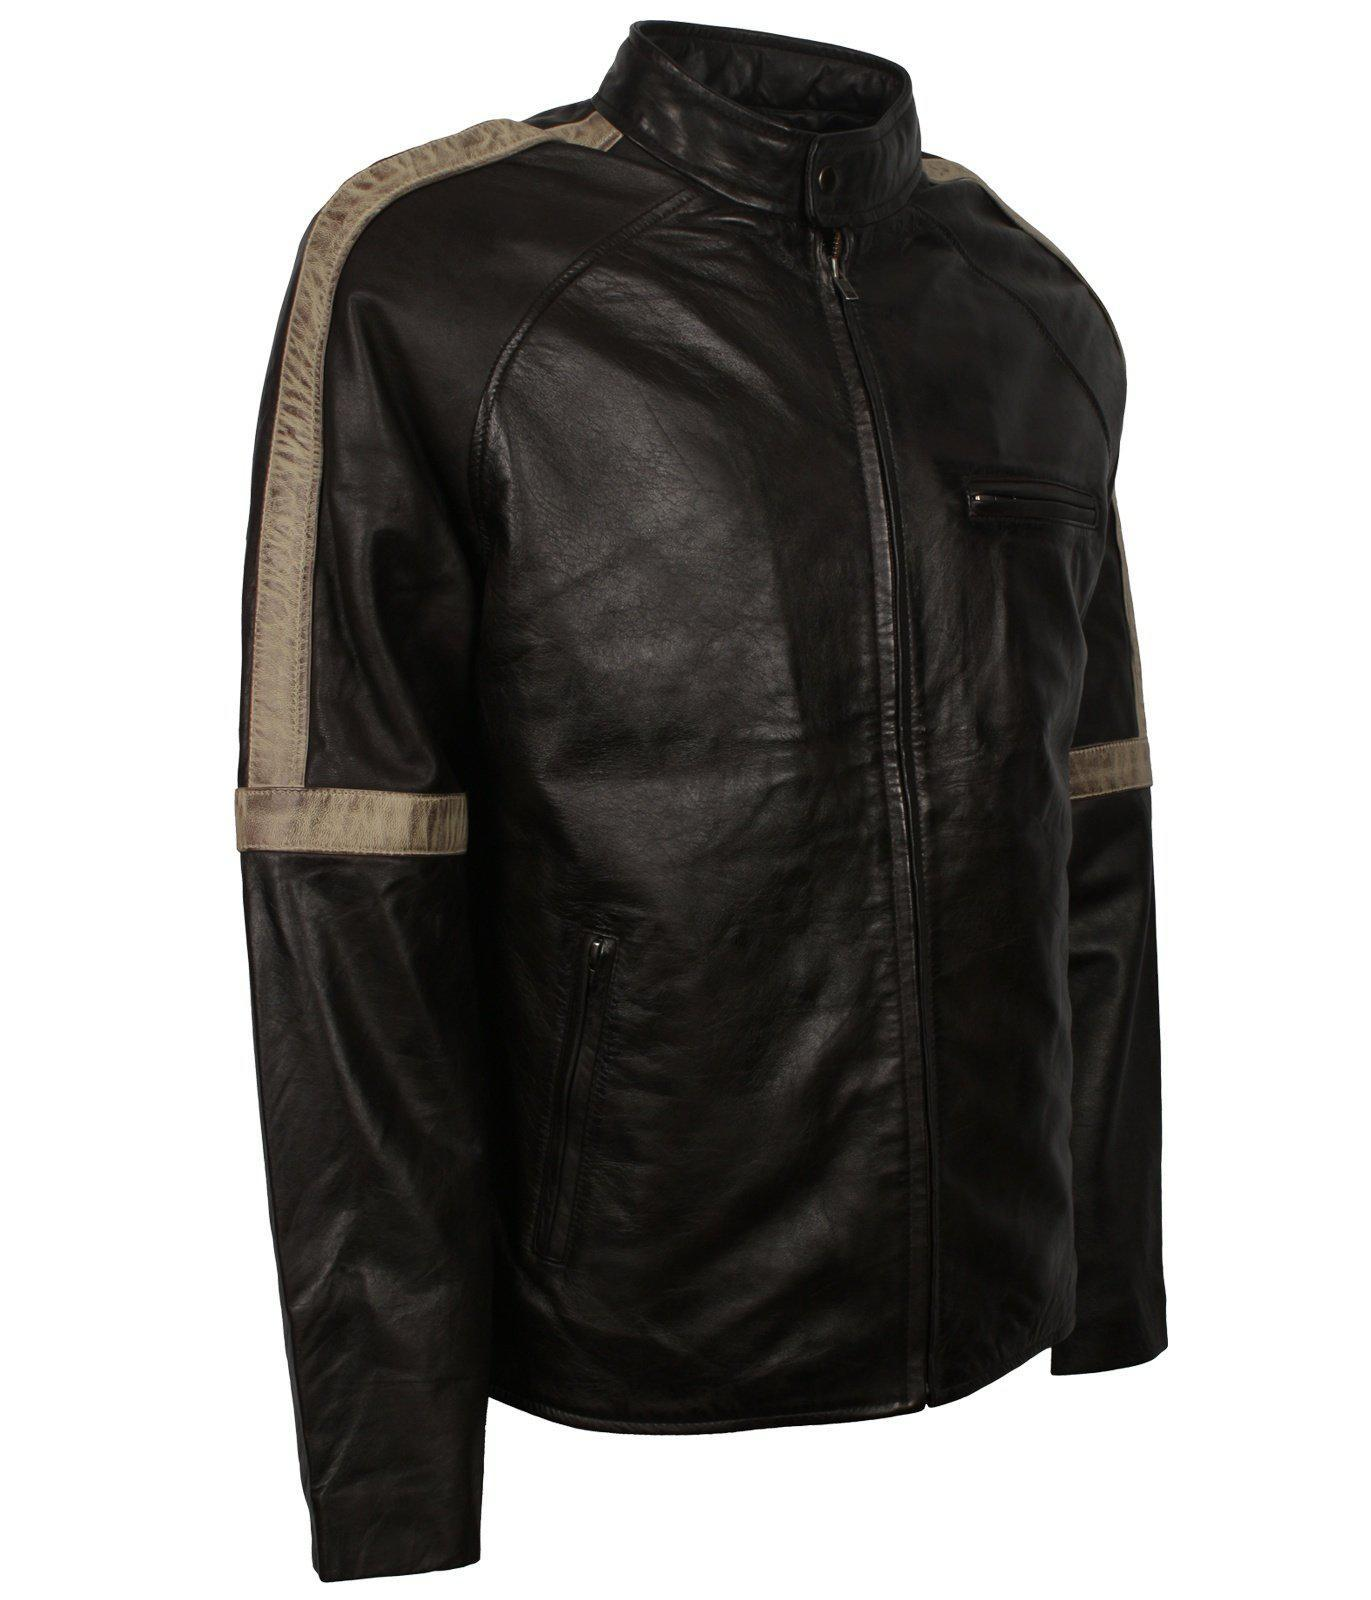 Vintage Jacket Christmas Gifts for Bikers